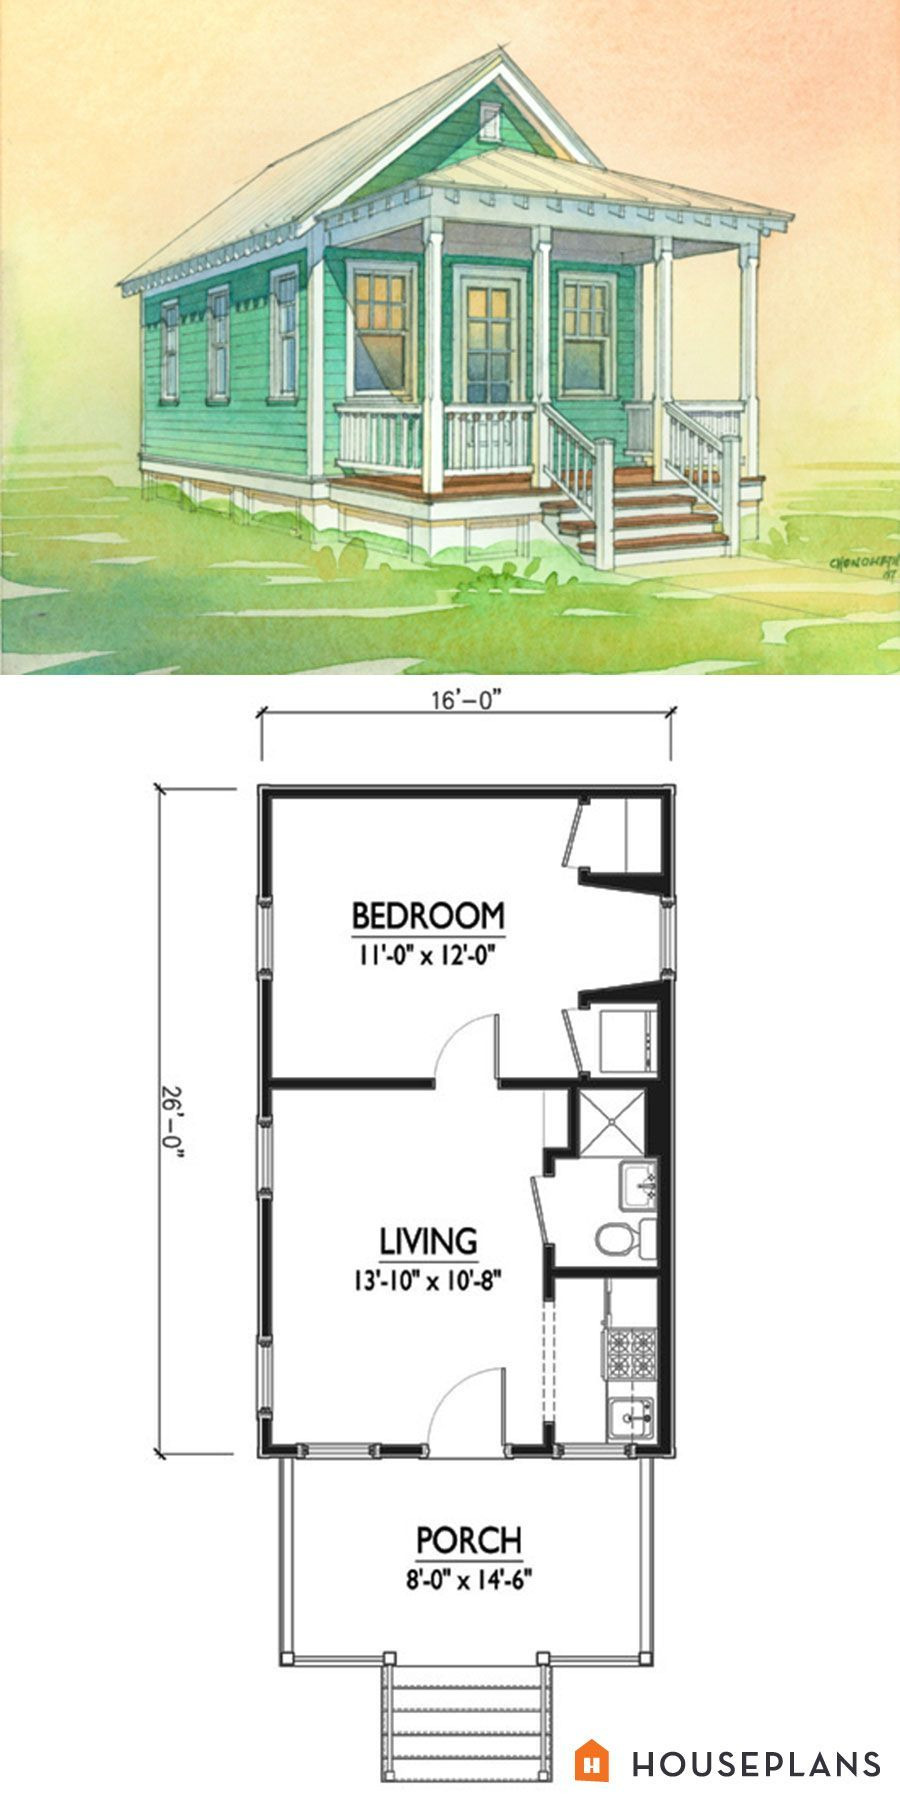 Coastal Cottage House Plans Elegant Charming Tiny Cottage Plan by Marianne Cusato 400sft 1